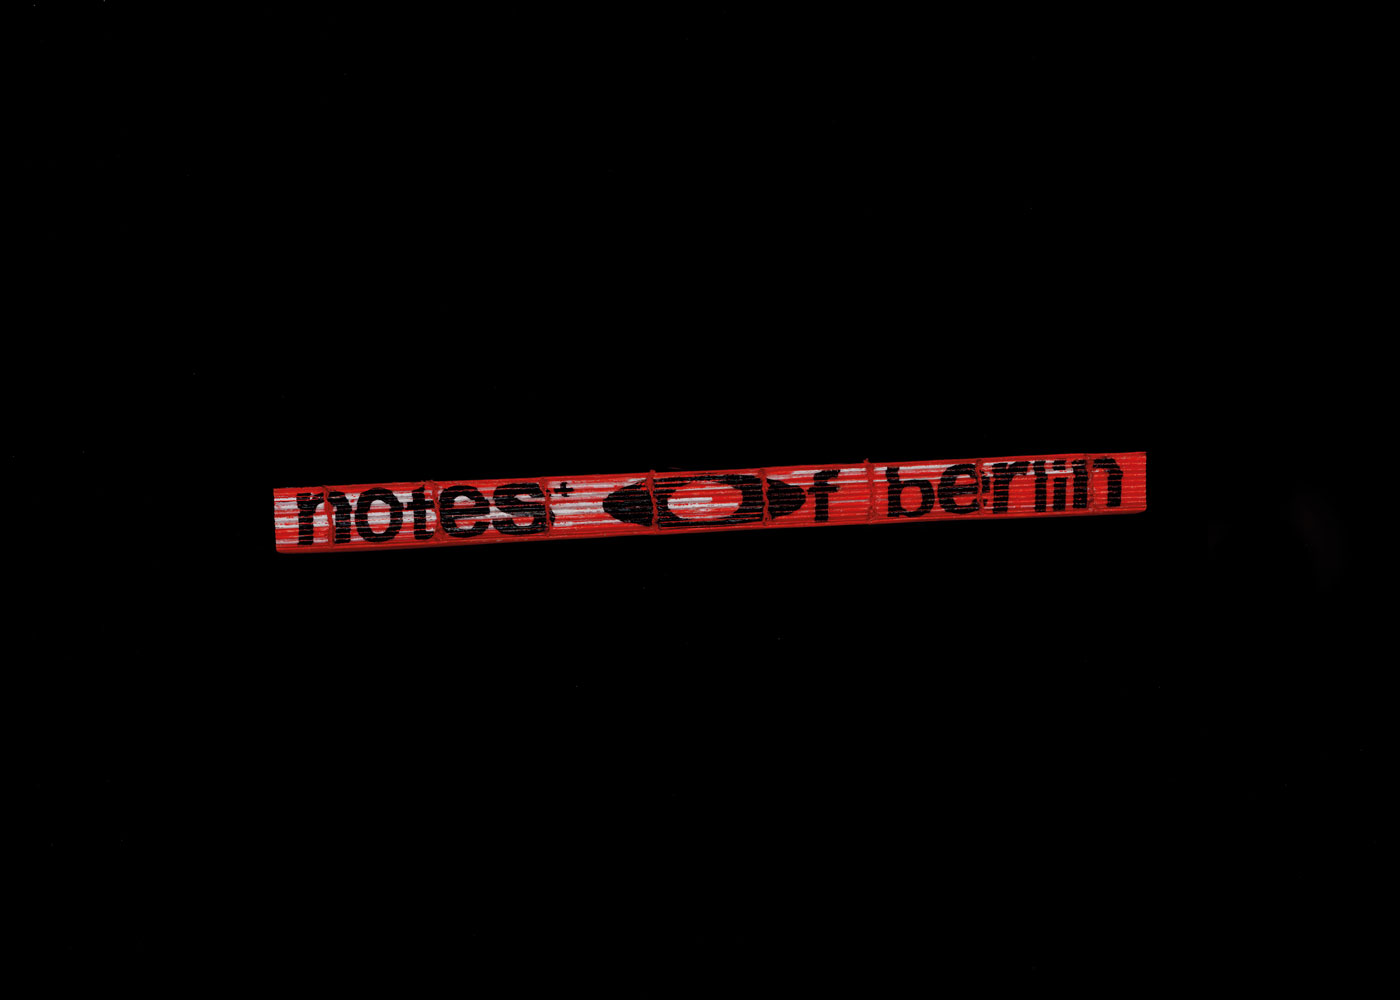 Masoud Morgan Notes of Berlin